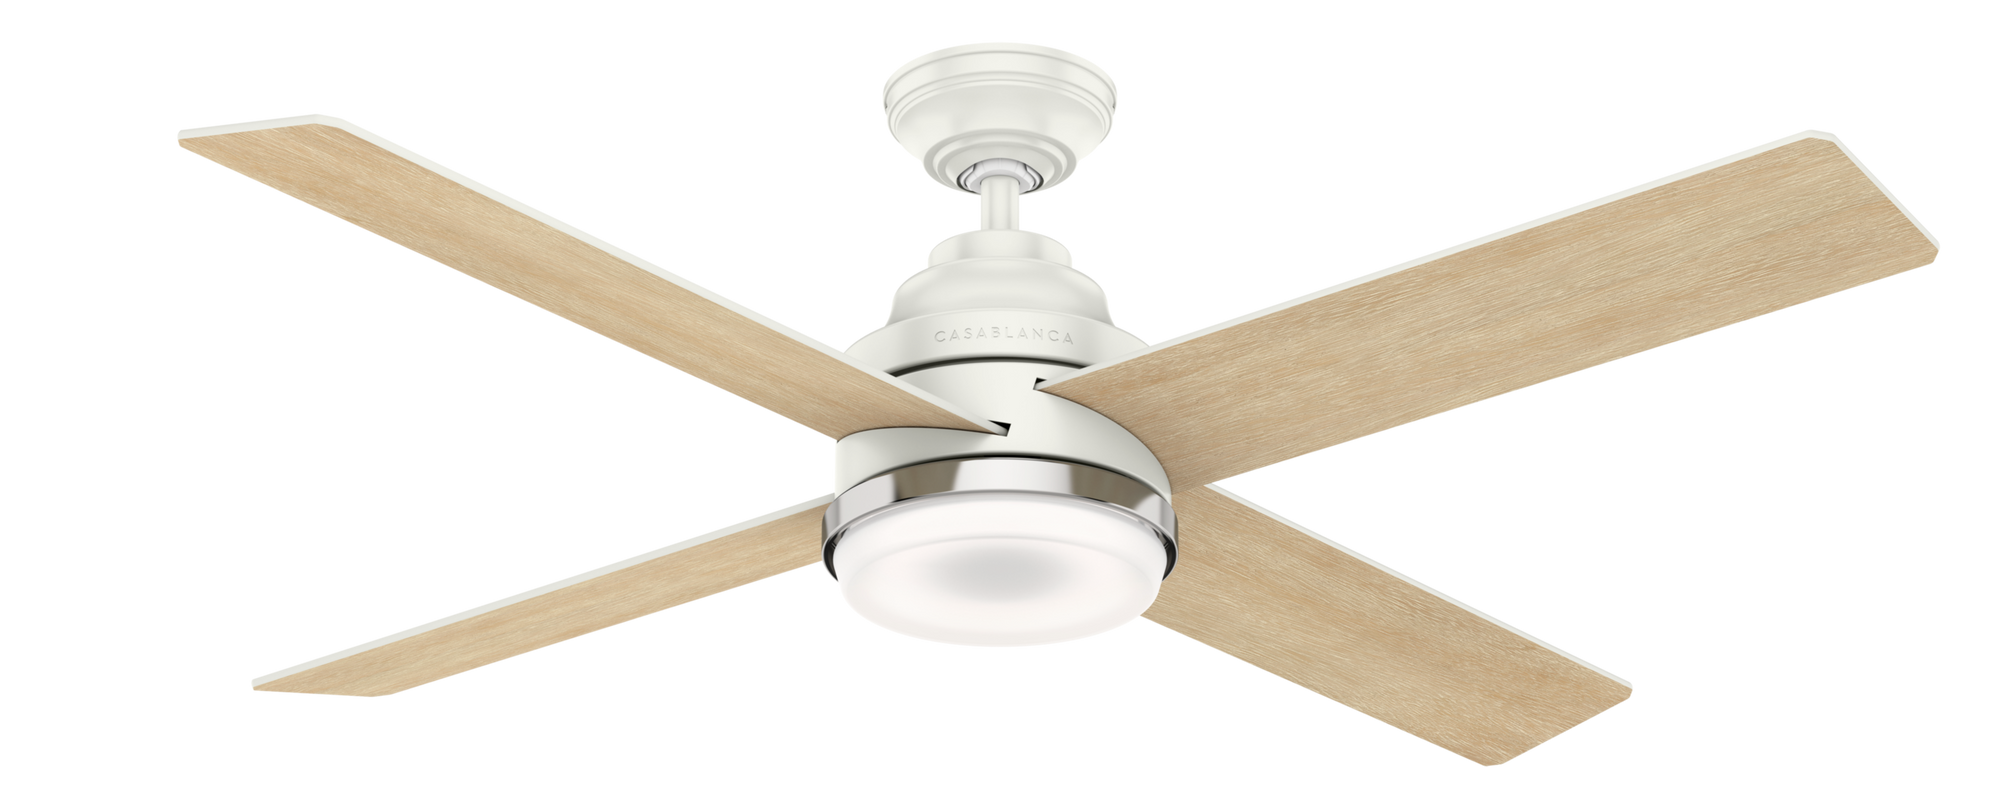 Casablanca Indoor Daphne Ceiling Fan with LED LightJD inch, White, 59413